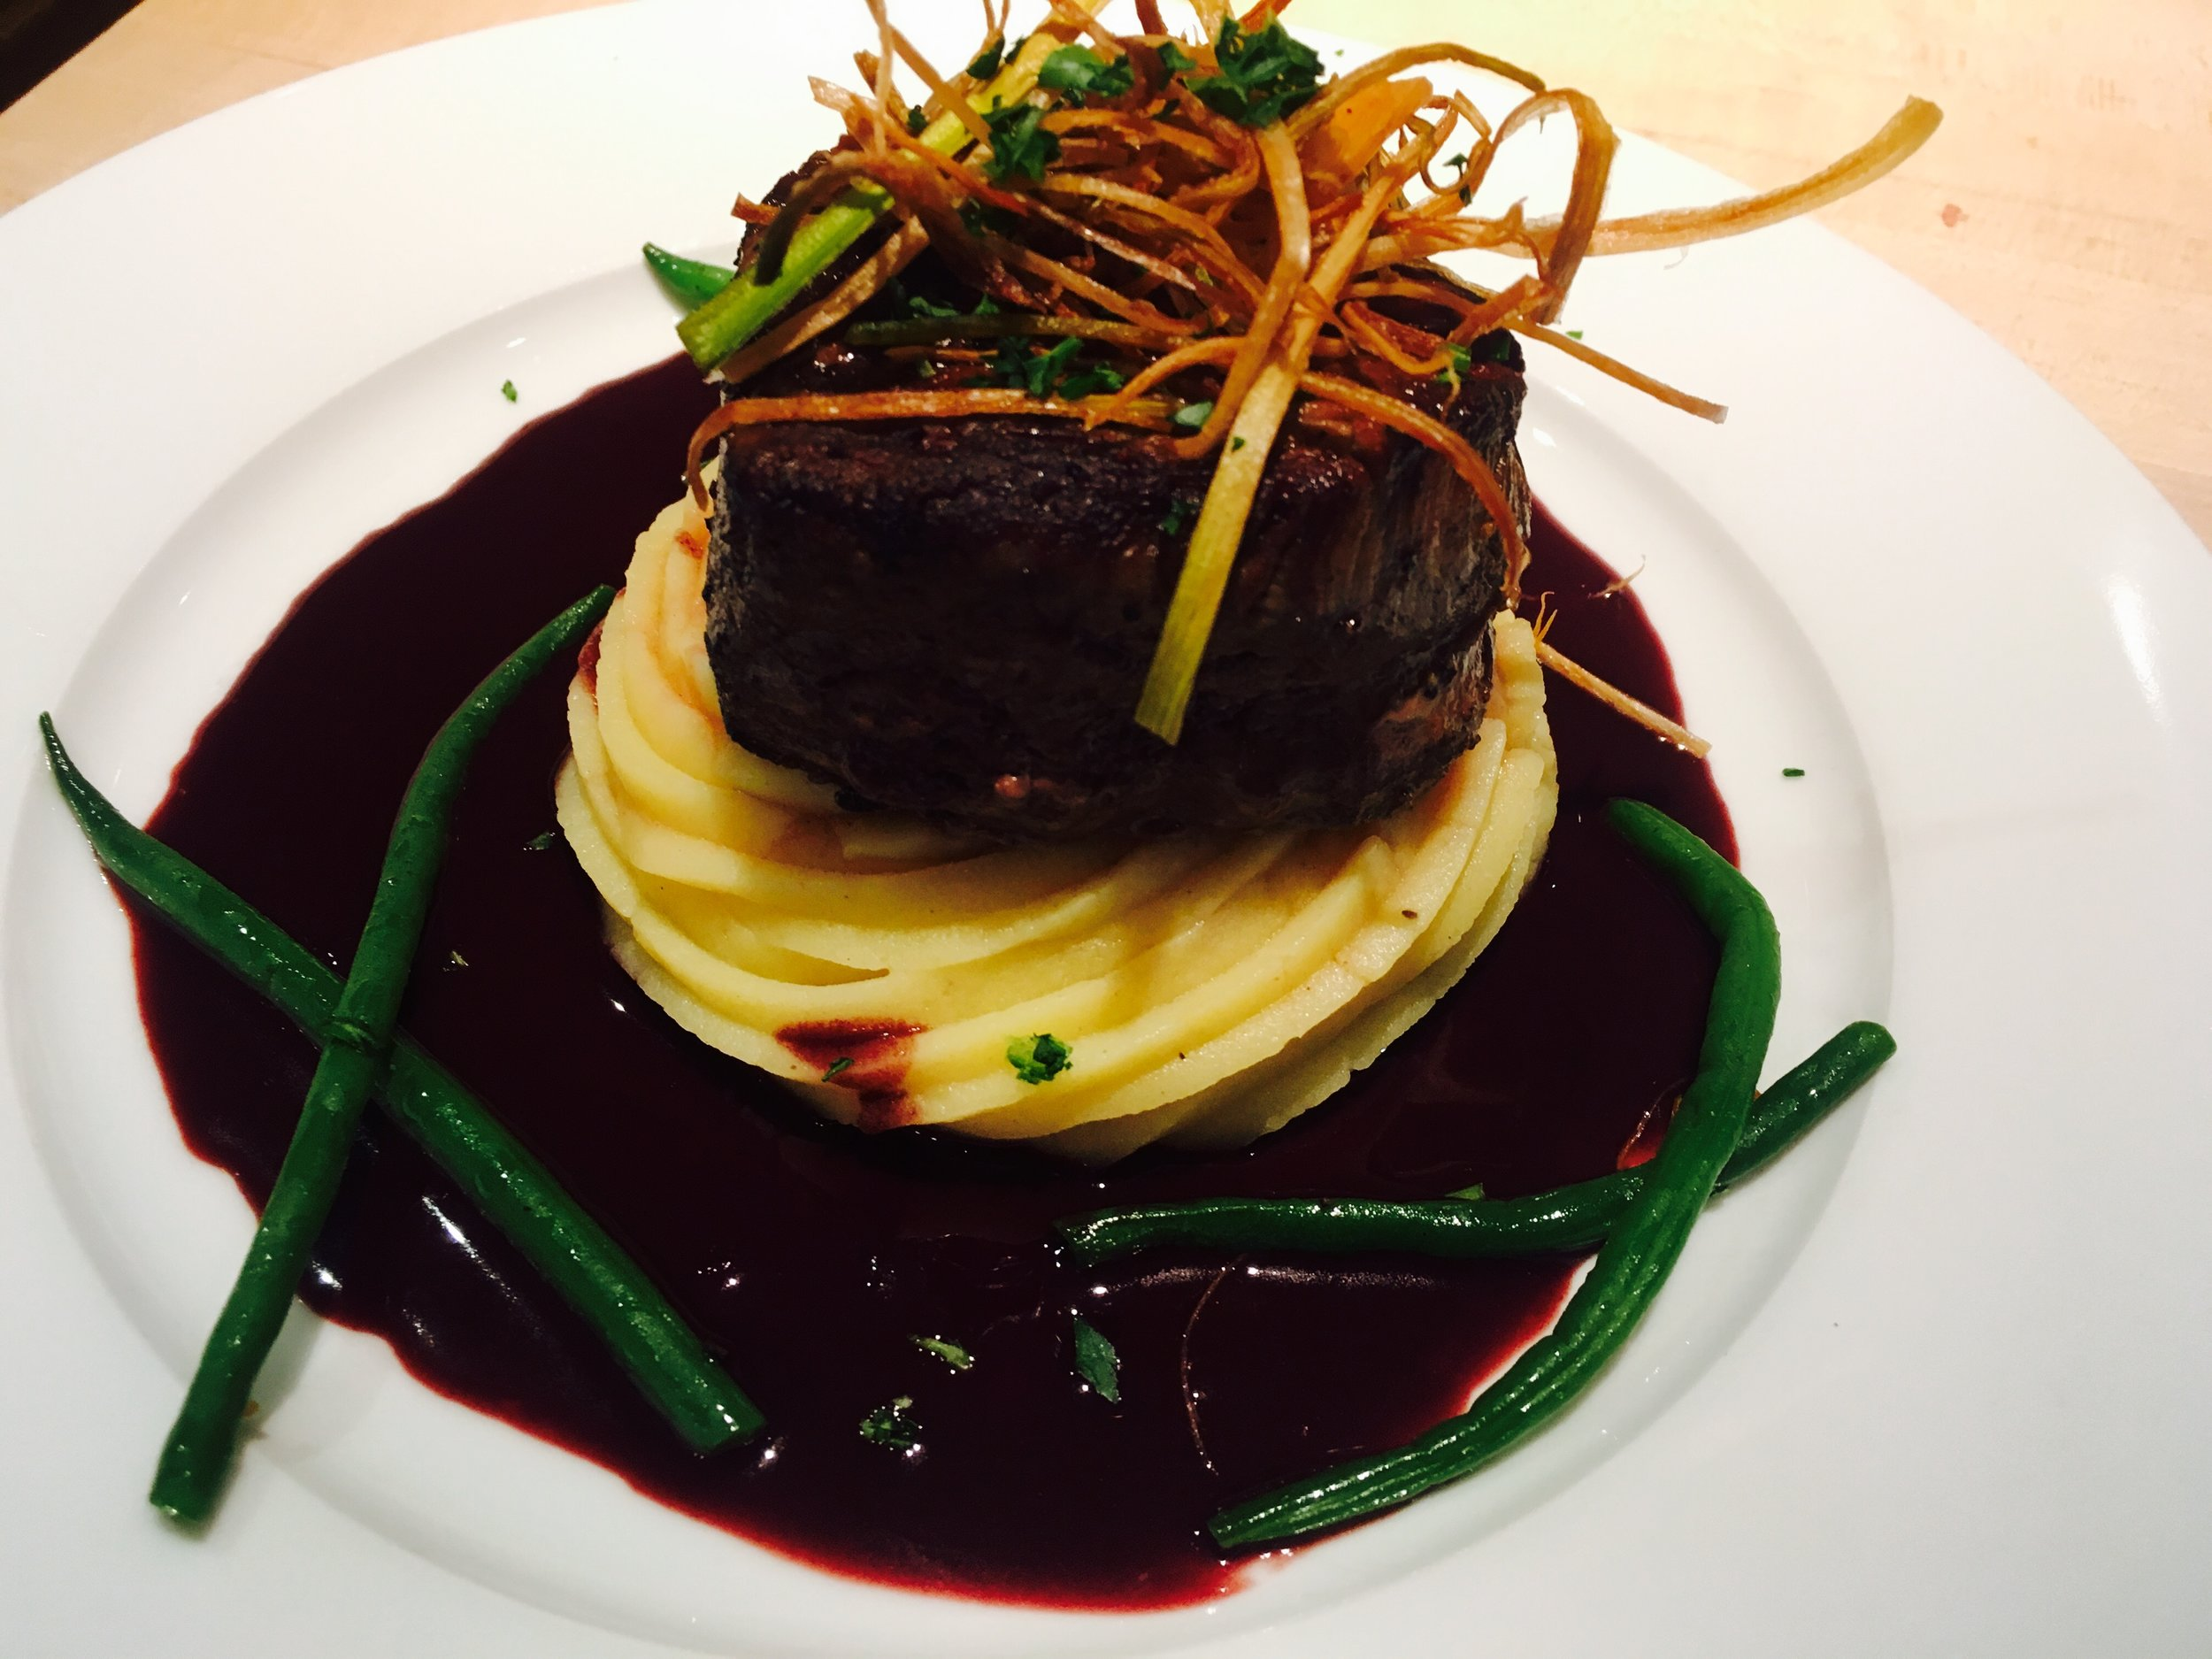 Filet Mignon, Mashed Potatoes, Haricots Verts and Red Wine Sauce